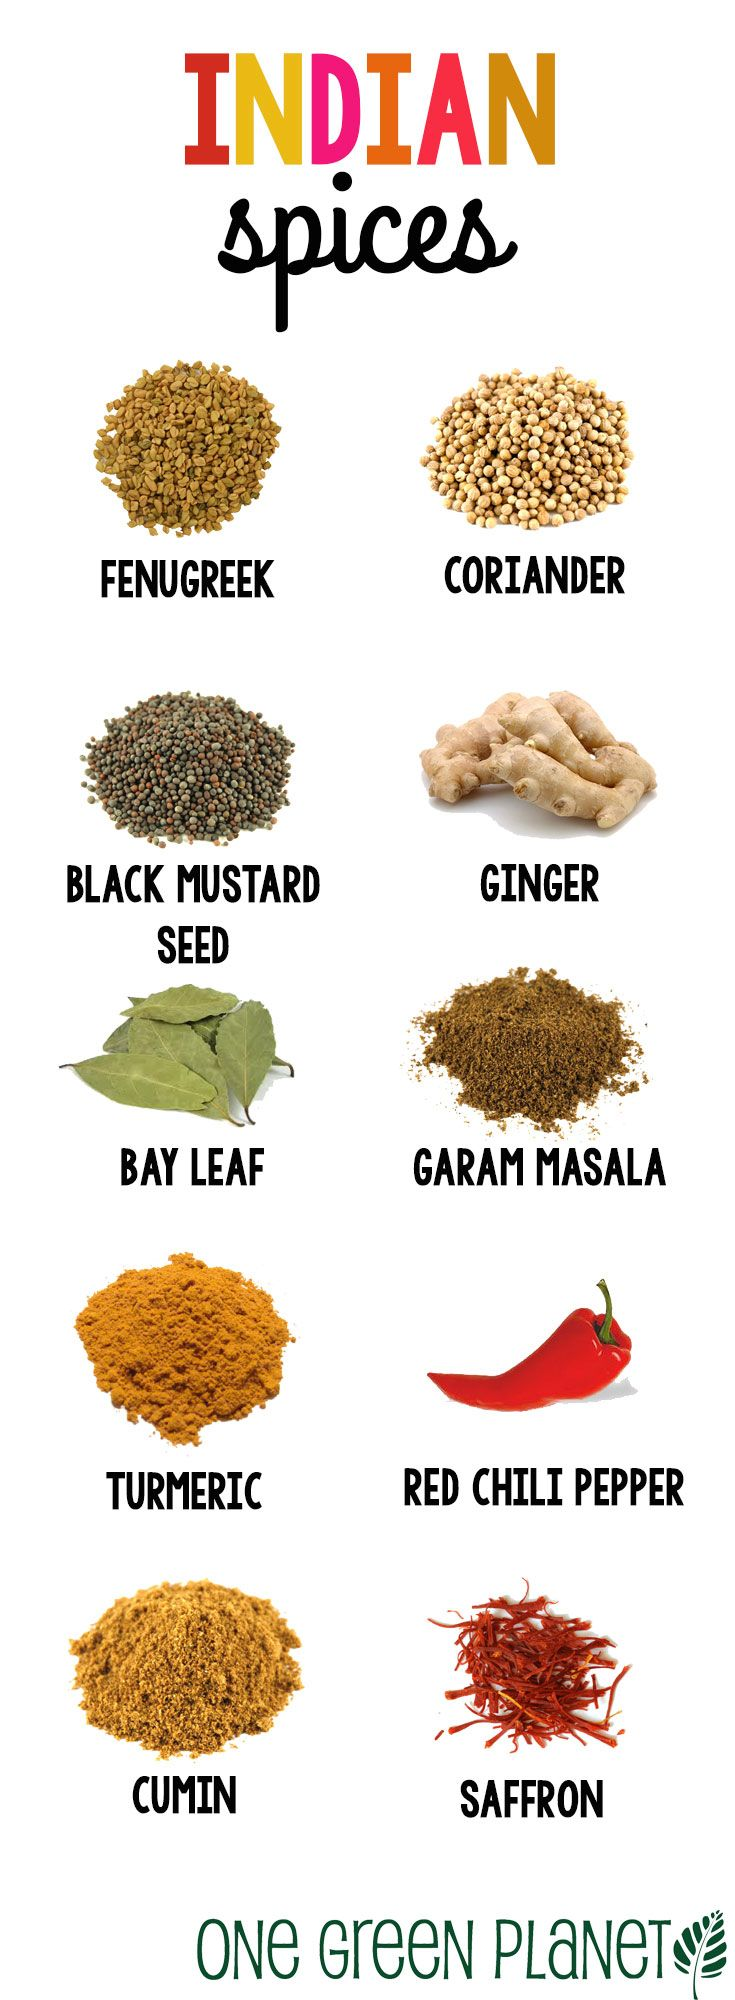 indian spices list with images pdf